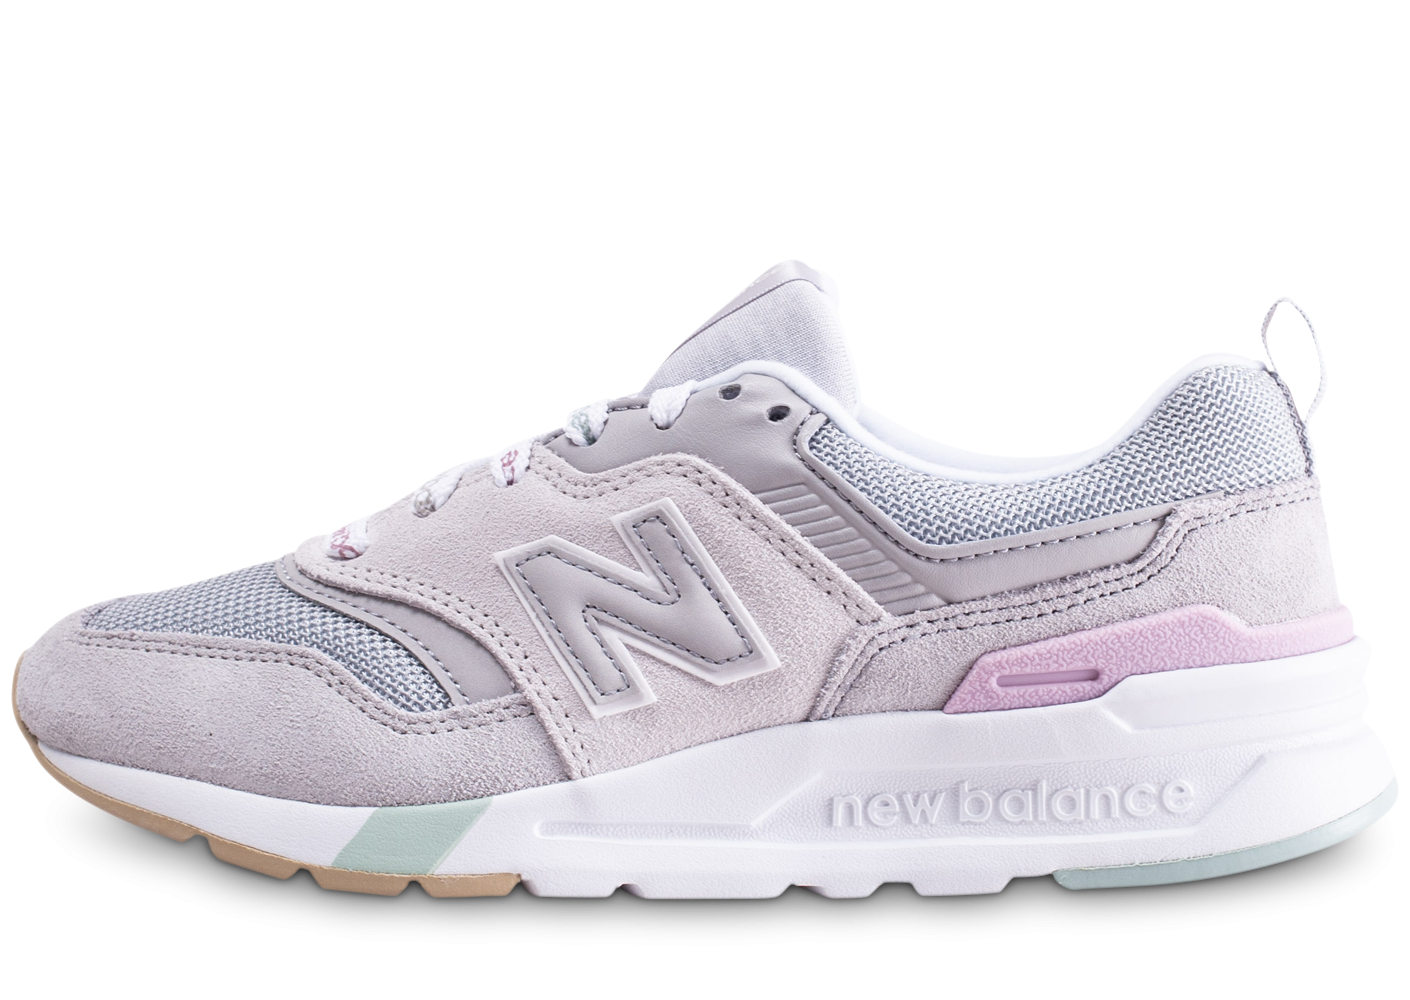 997 new balance homme